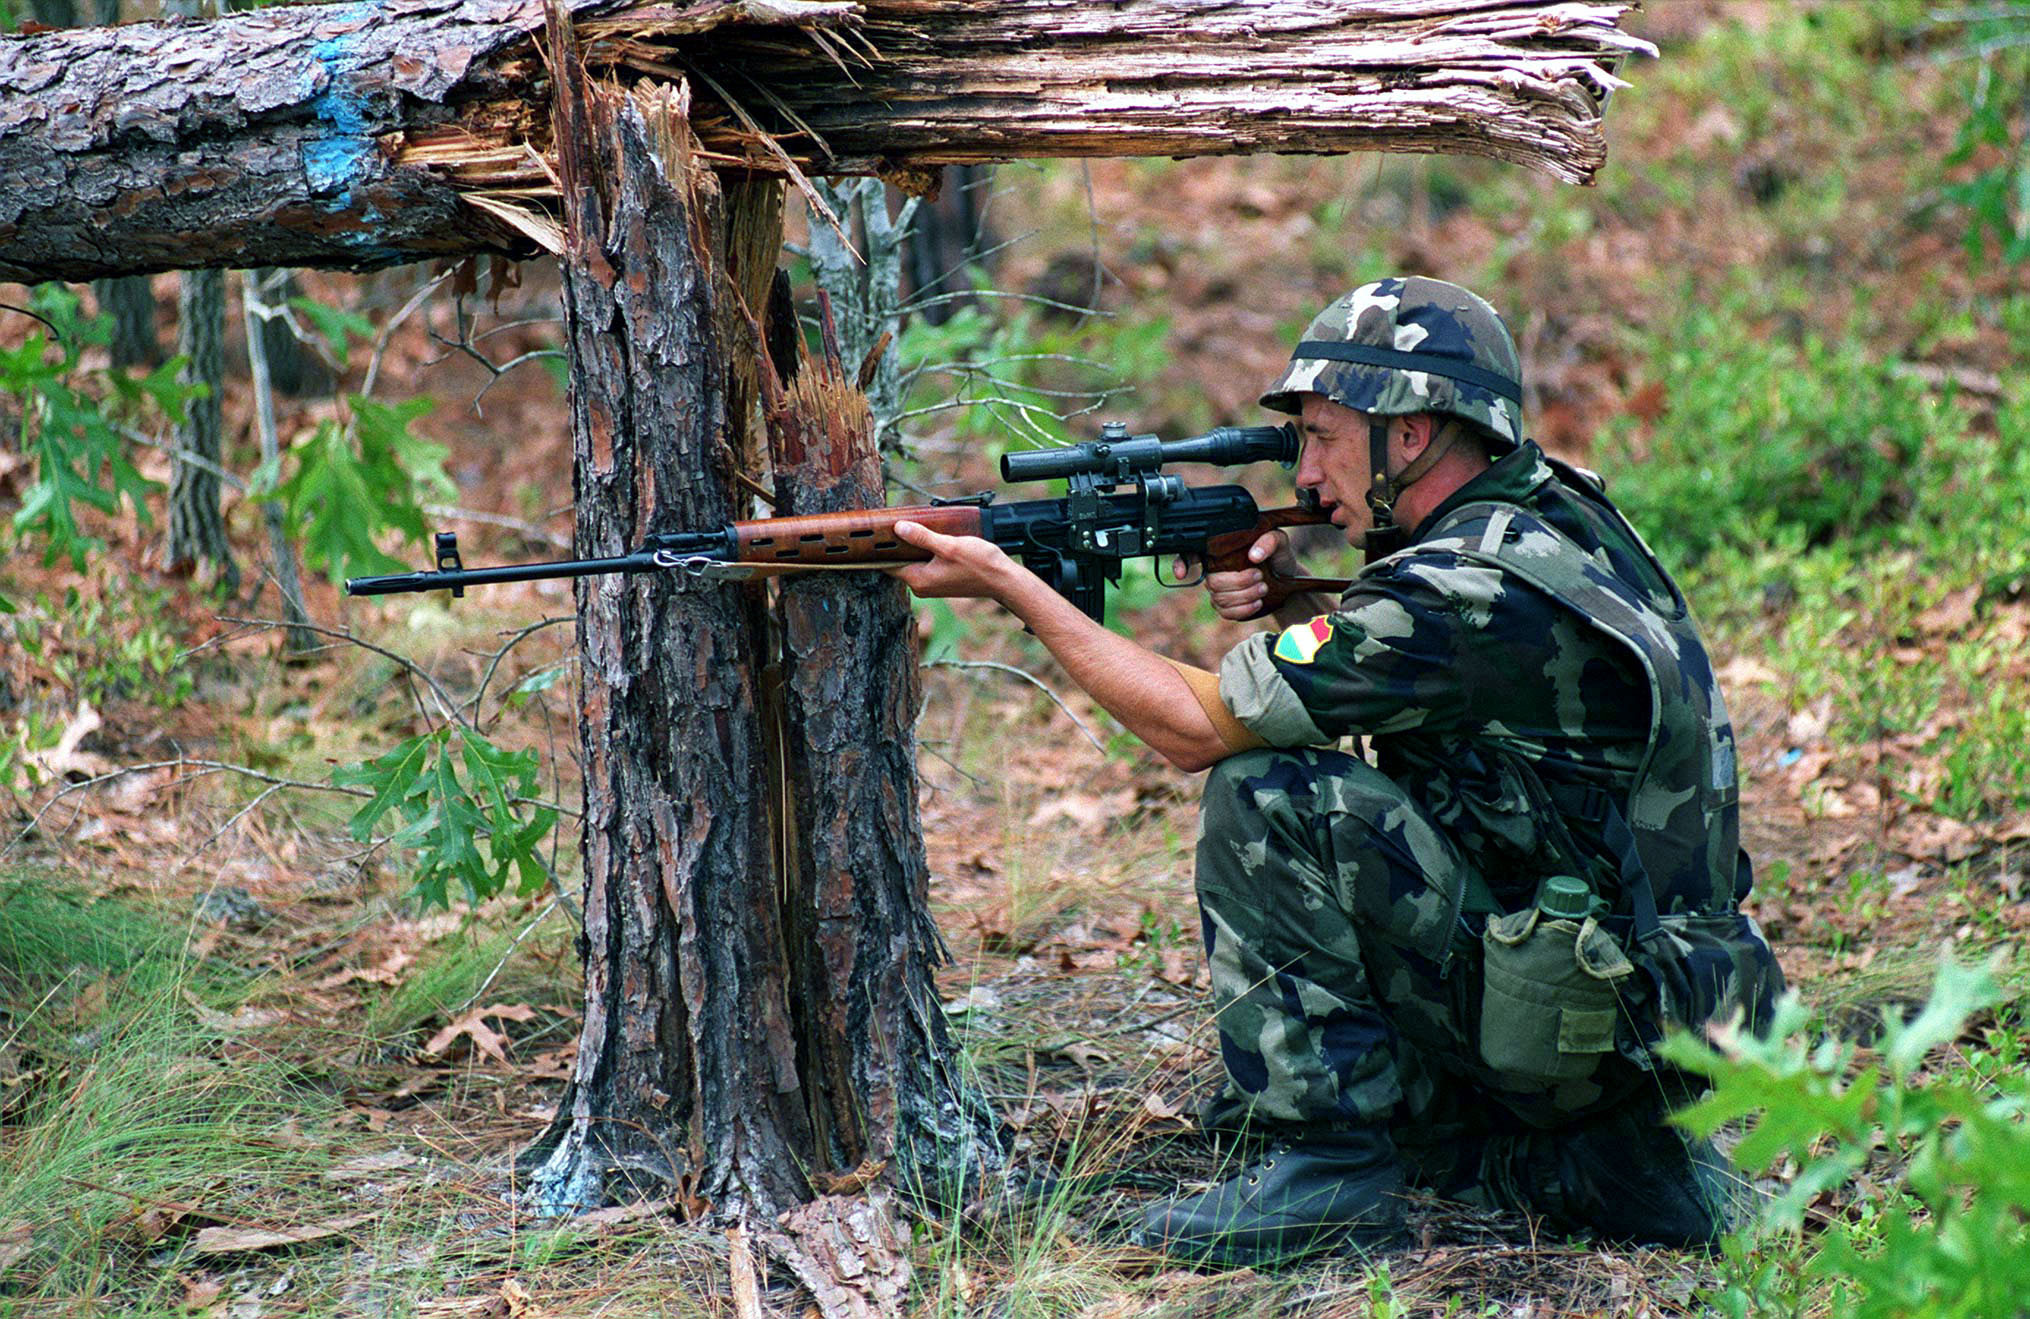 5 Most Powerful Sniper Rifles In The World - Eskify